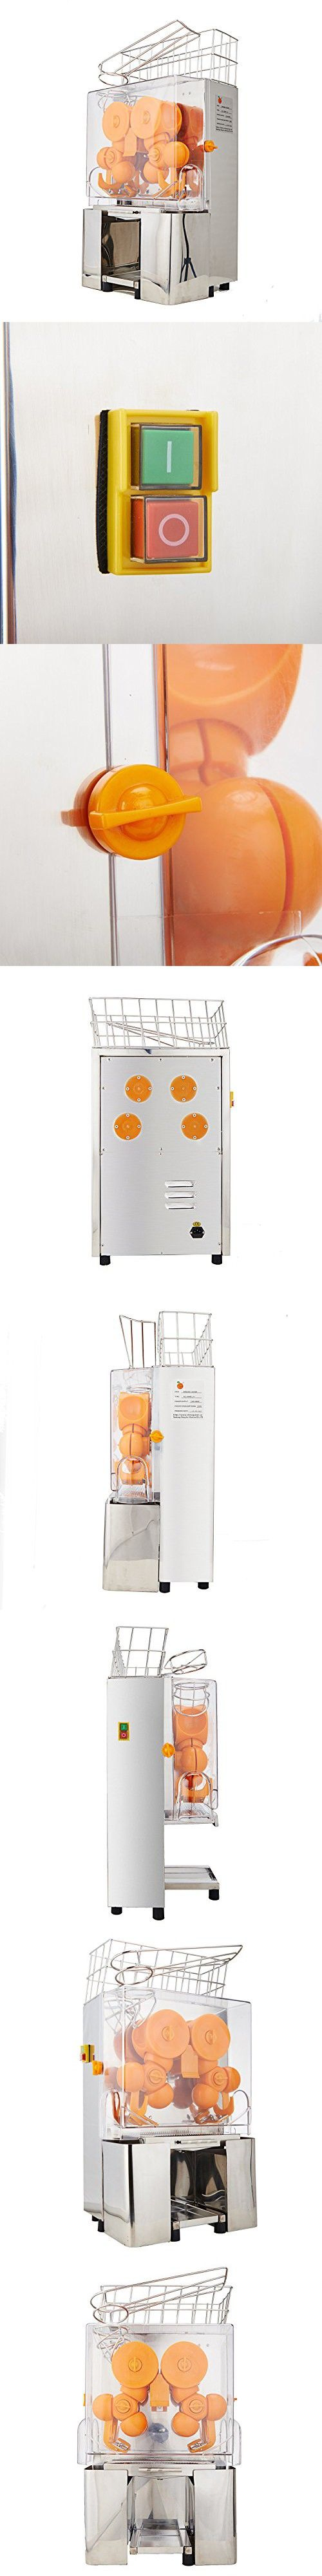 Mophorn Orange Juice Squeezer Commercial Orange Juicer 20-22 Oranges per Mins Citrus Juicer Juice Machine for Home and Commercial Use (Stainless Steel Tank)